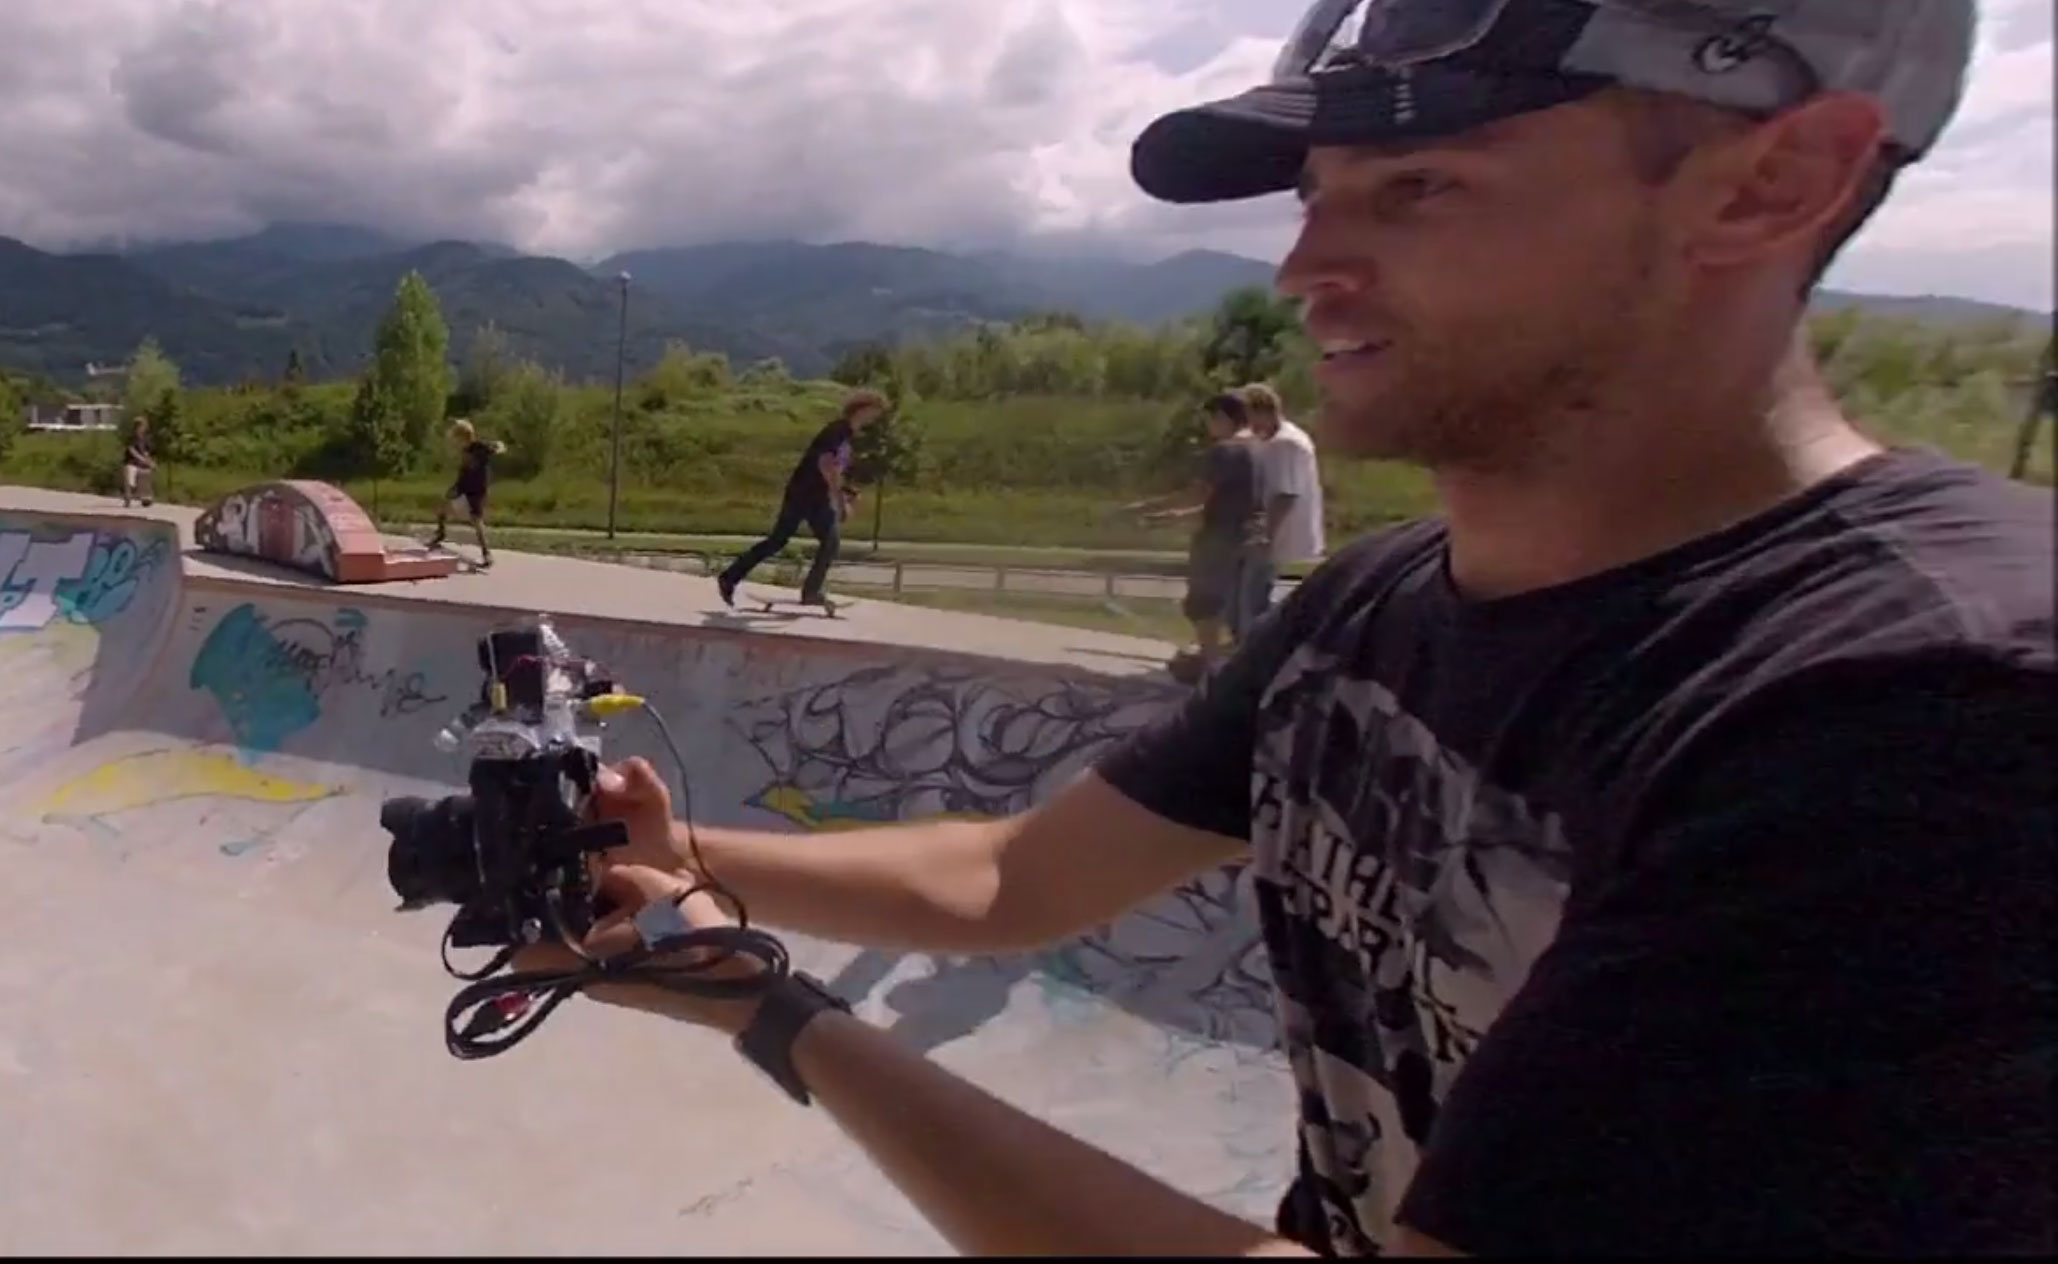 SteadXP - The Future of Image Stabilization for DSLRs and GoPros